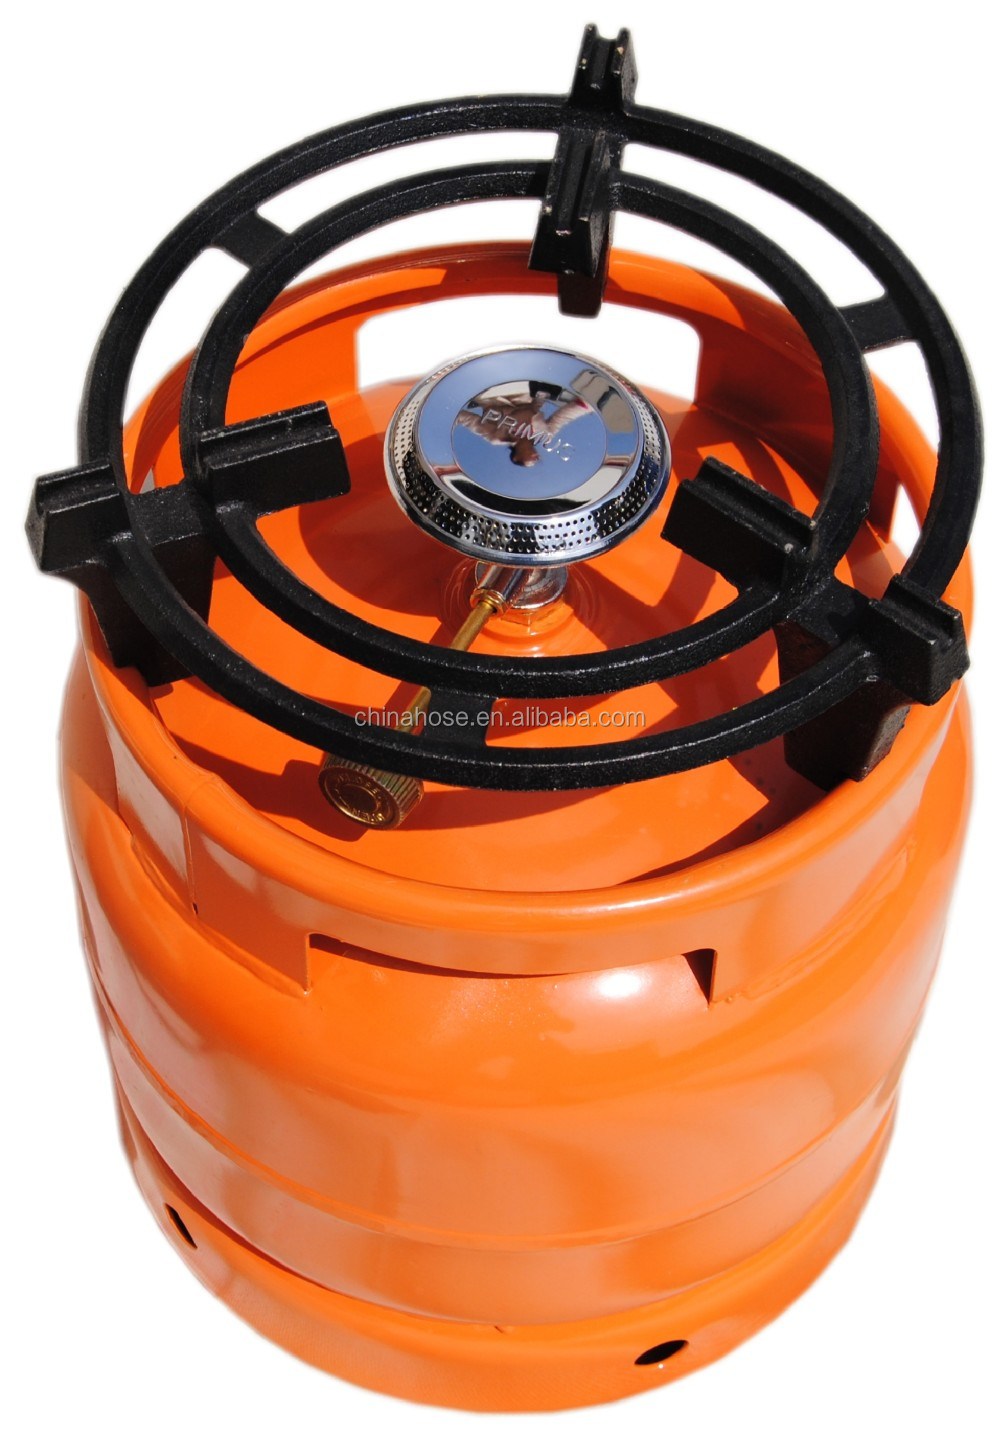 Factory Supply 6kg Mini Gas Cylinder,Cooking LPG Gas Cylinder Price